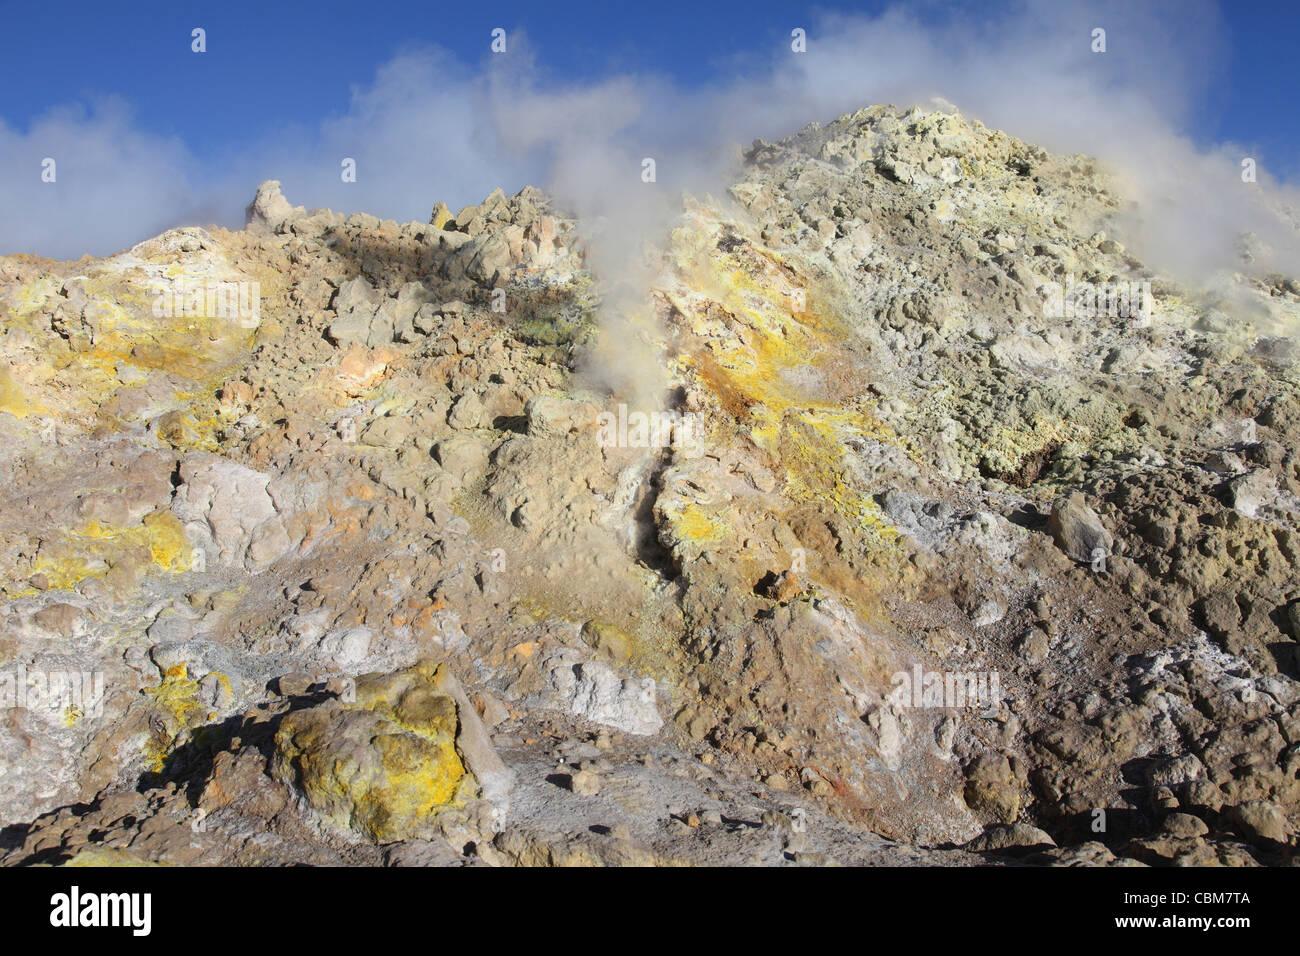 June 25, 2011 - Fumaroles with sulphur deposits. Flank of Bocca Nuova crater, Mount Etna volcano, Sicily, Italy. - Stock Image